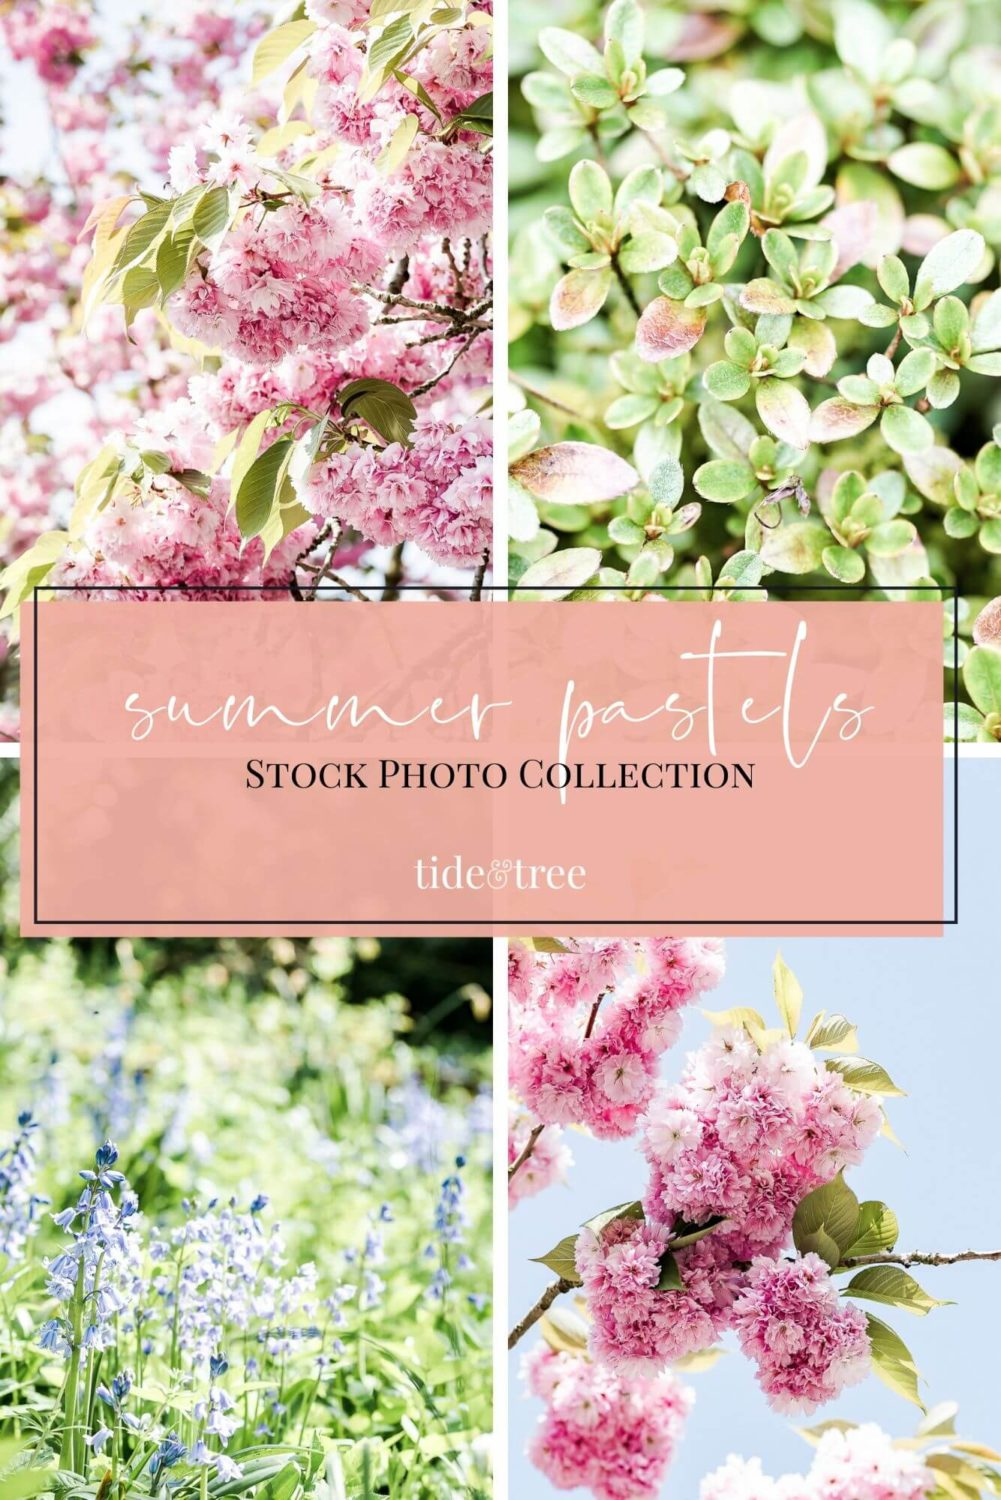 Summer Pastels Stock Photo Collection